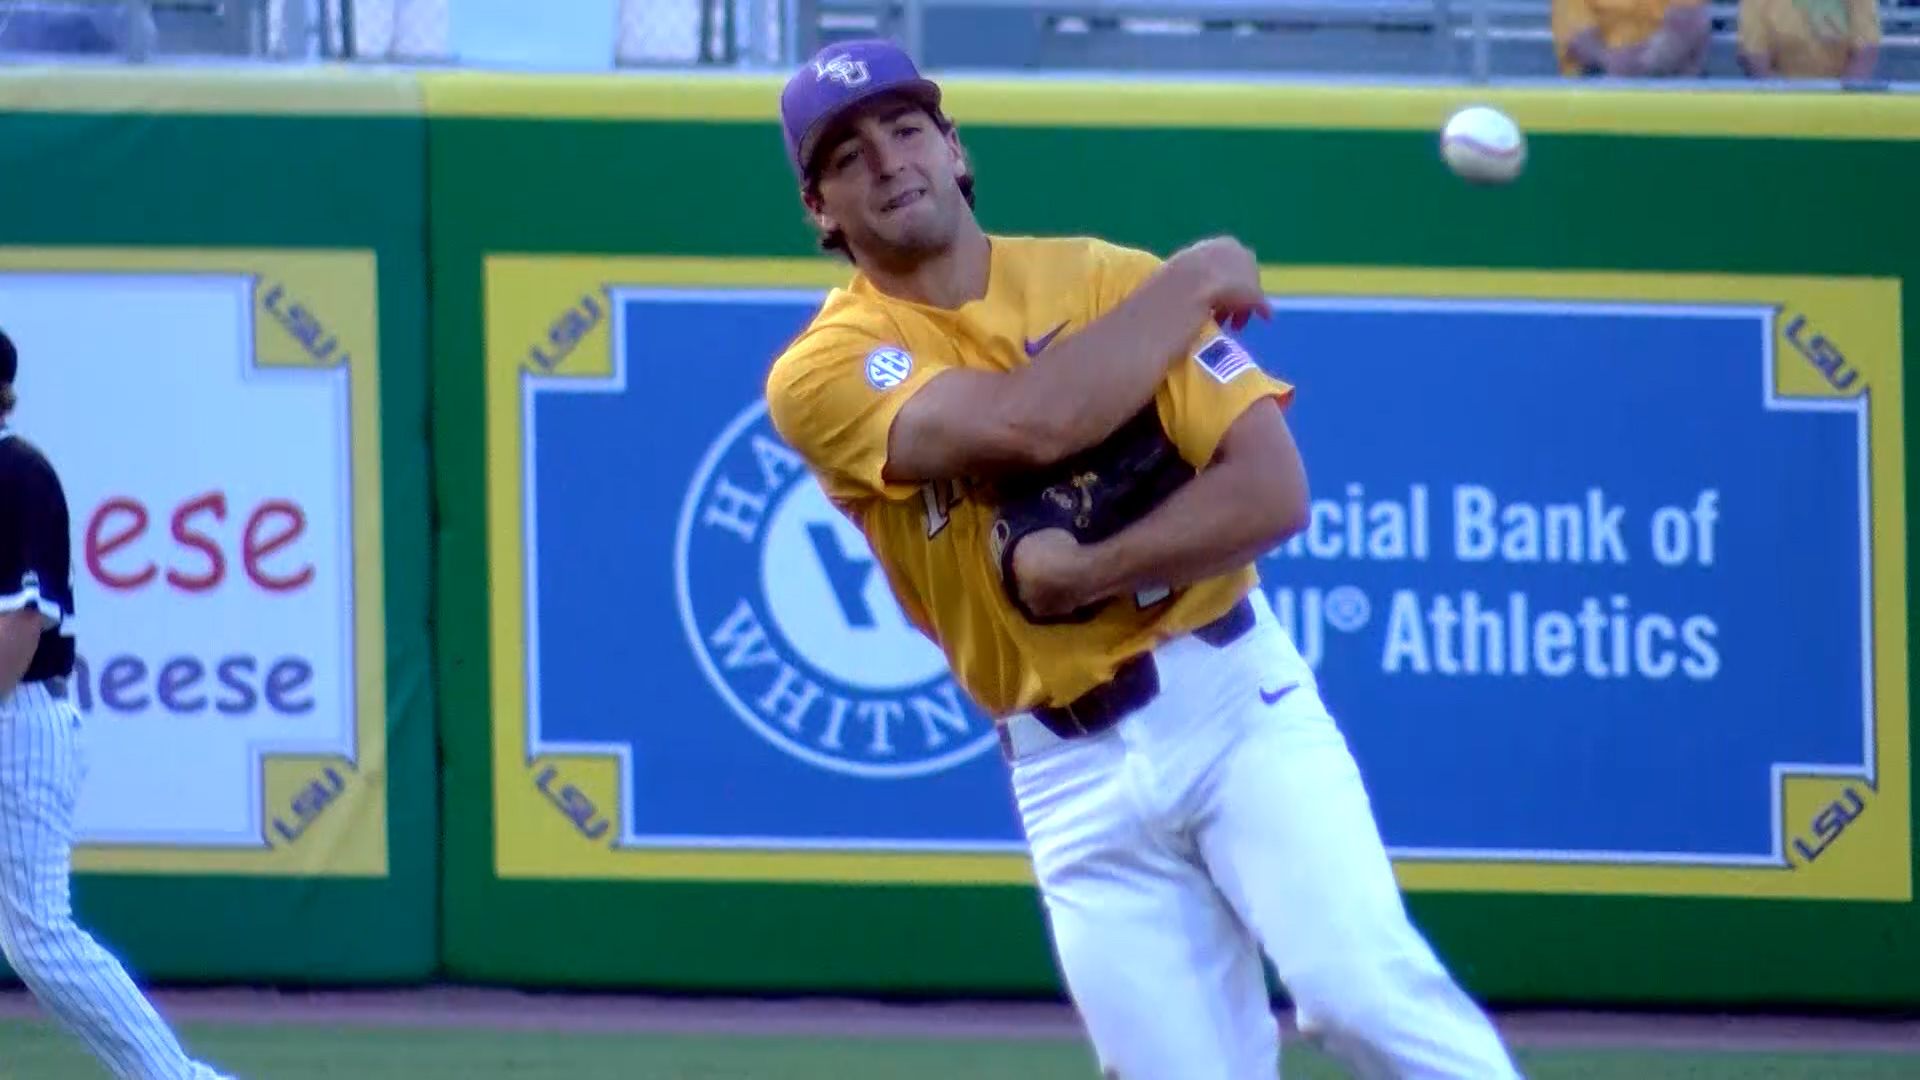 JOSH SMITH INFIELD THROW LSU_1559621336130.jpg.jpg